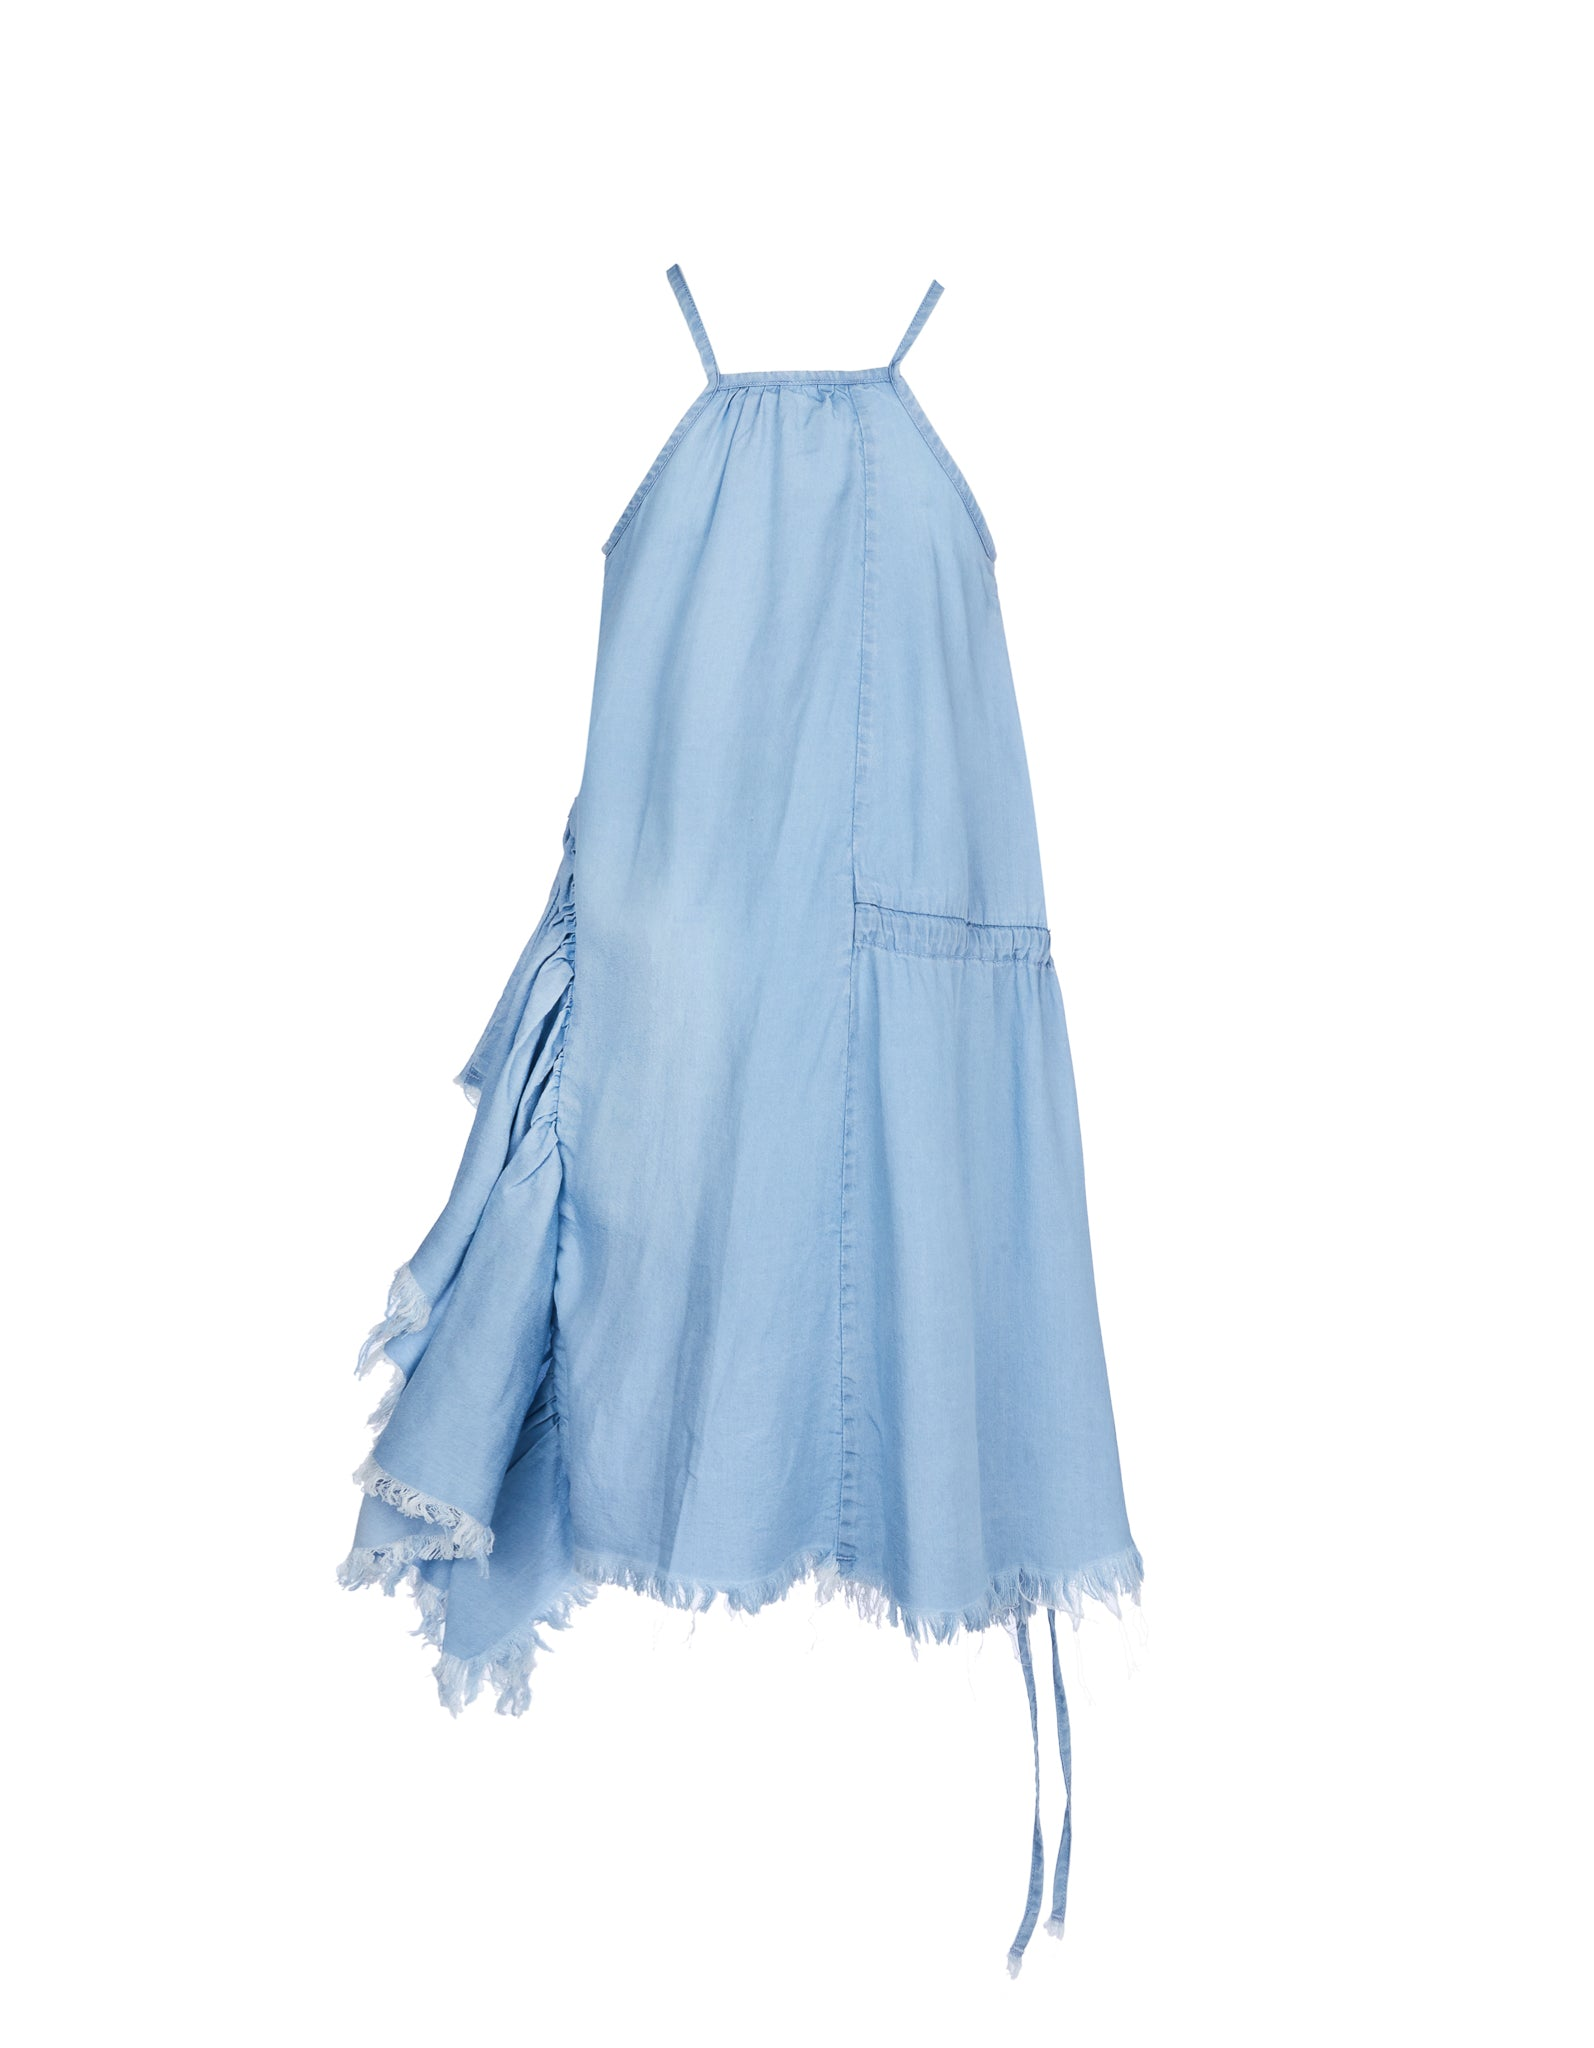 GATHERED DRESS IN BABY BLUE